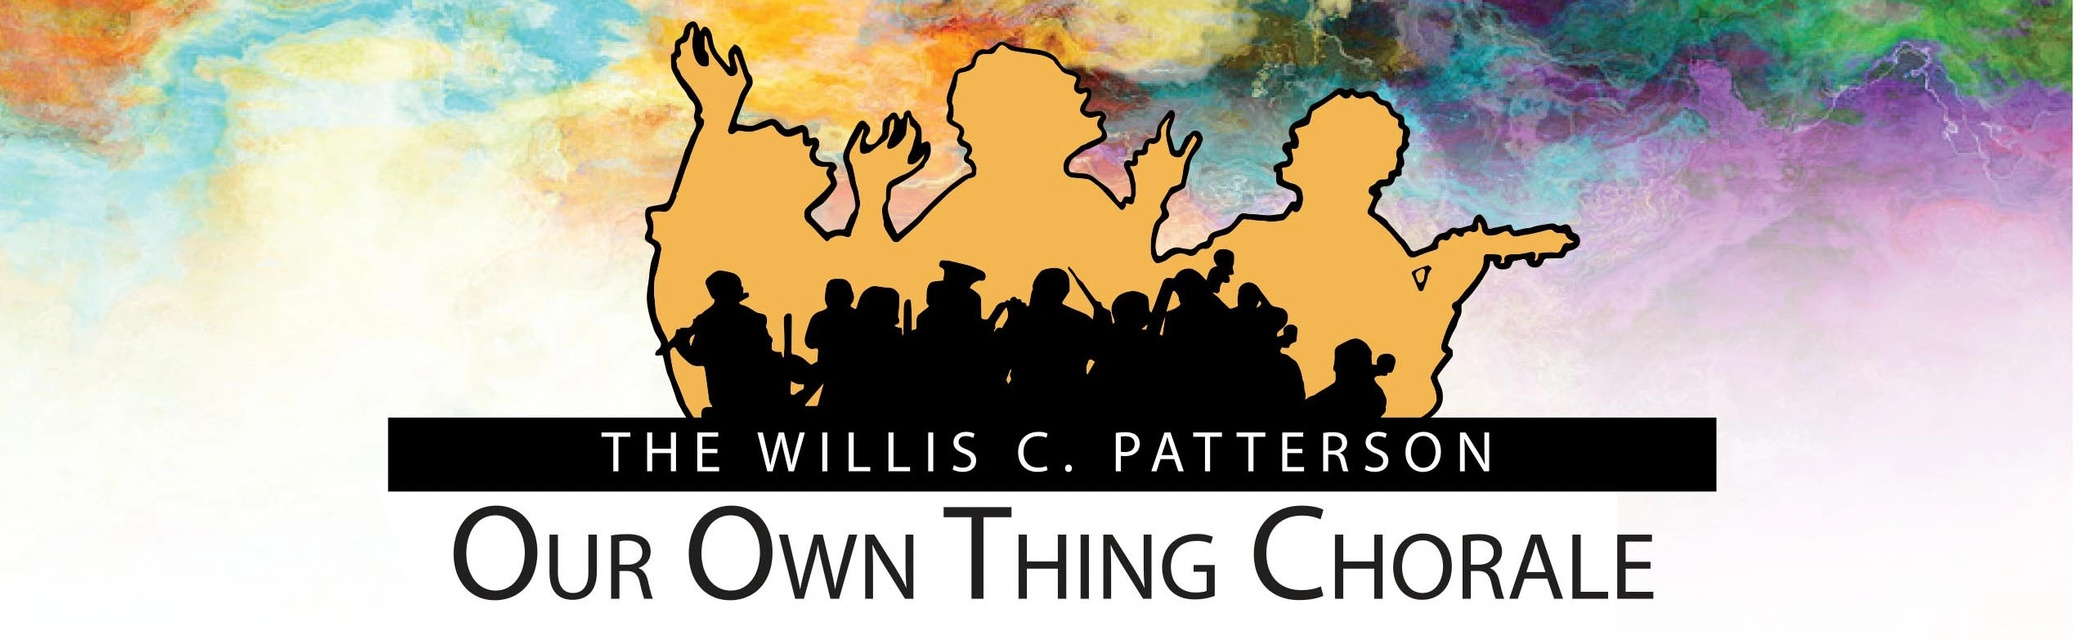 Willis C Patterson Our Own Thing Chorale